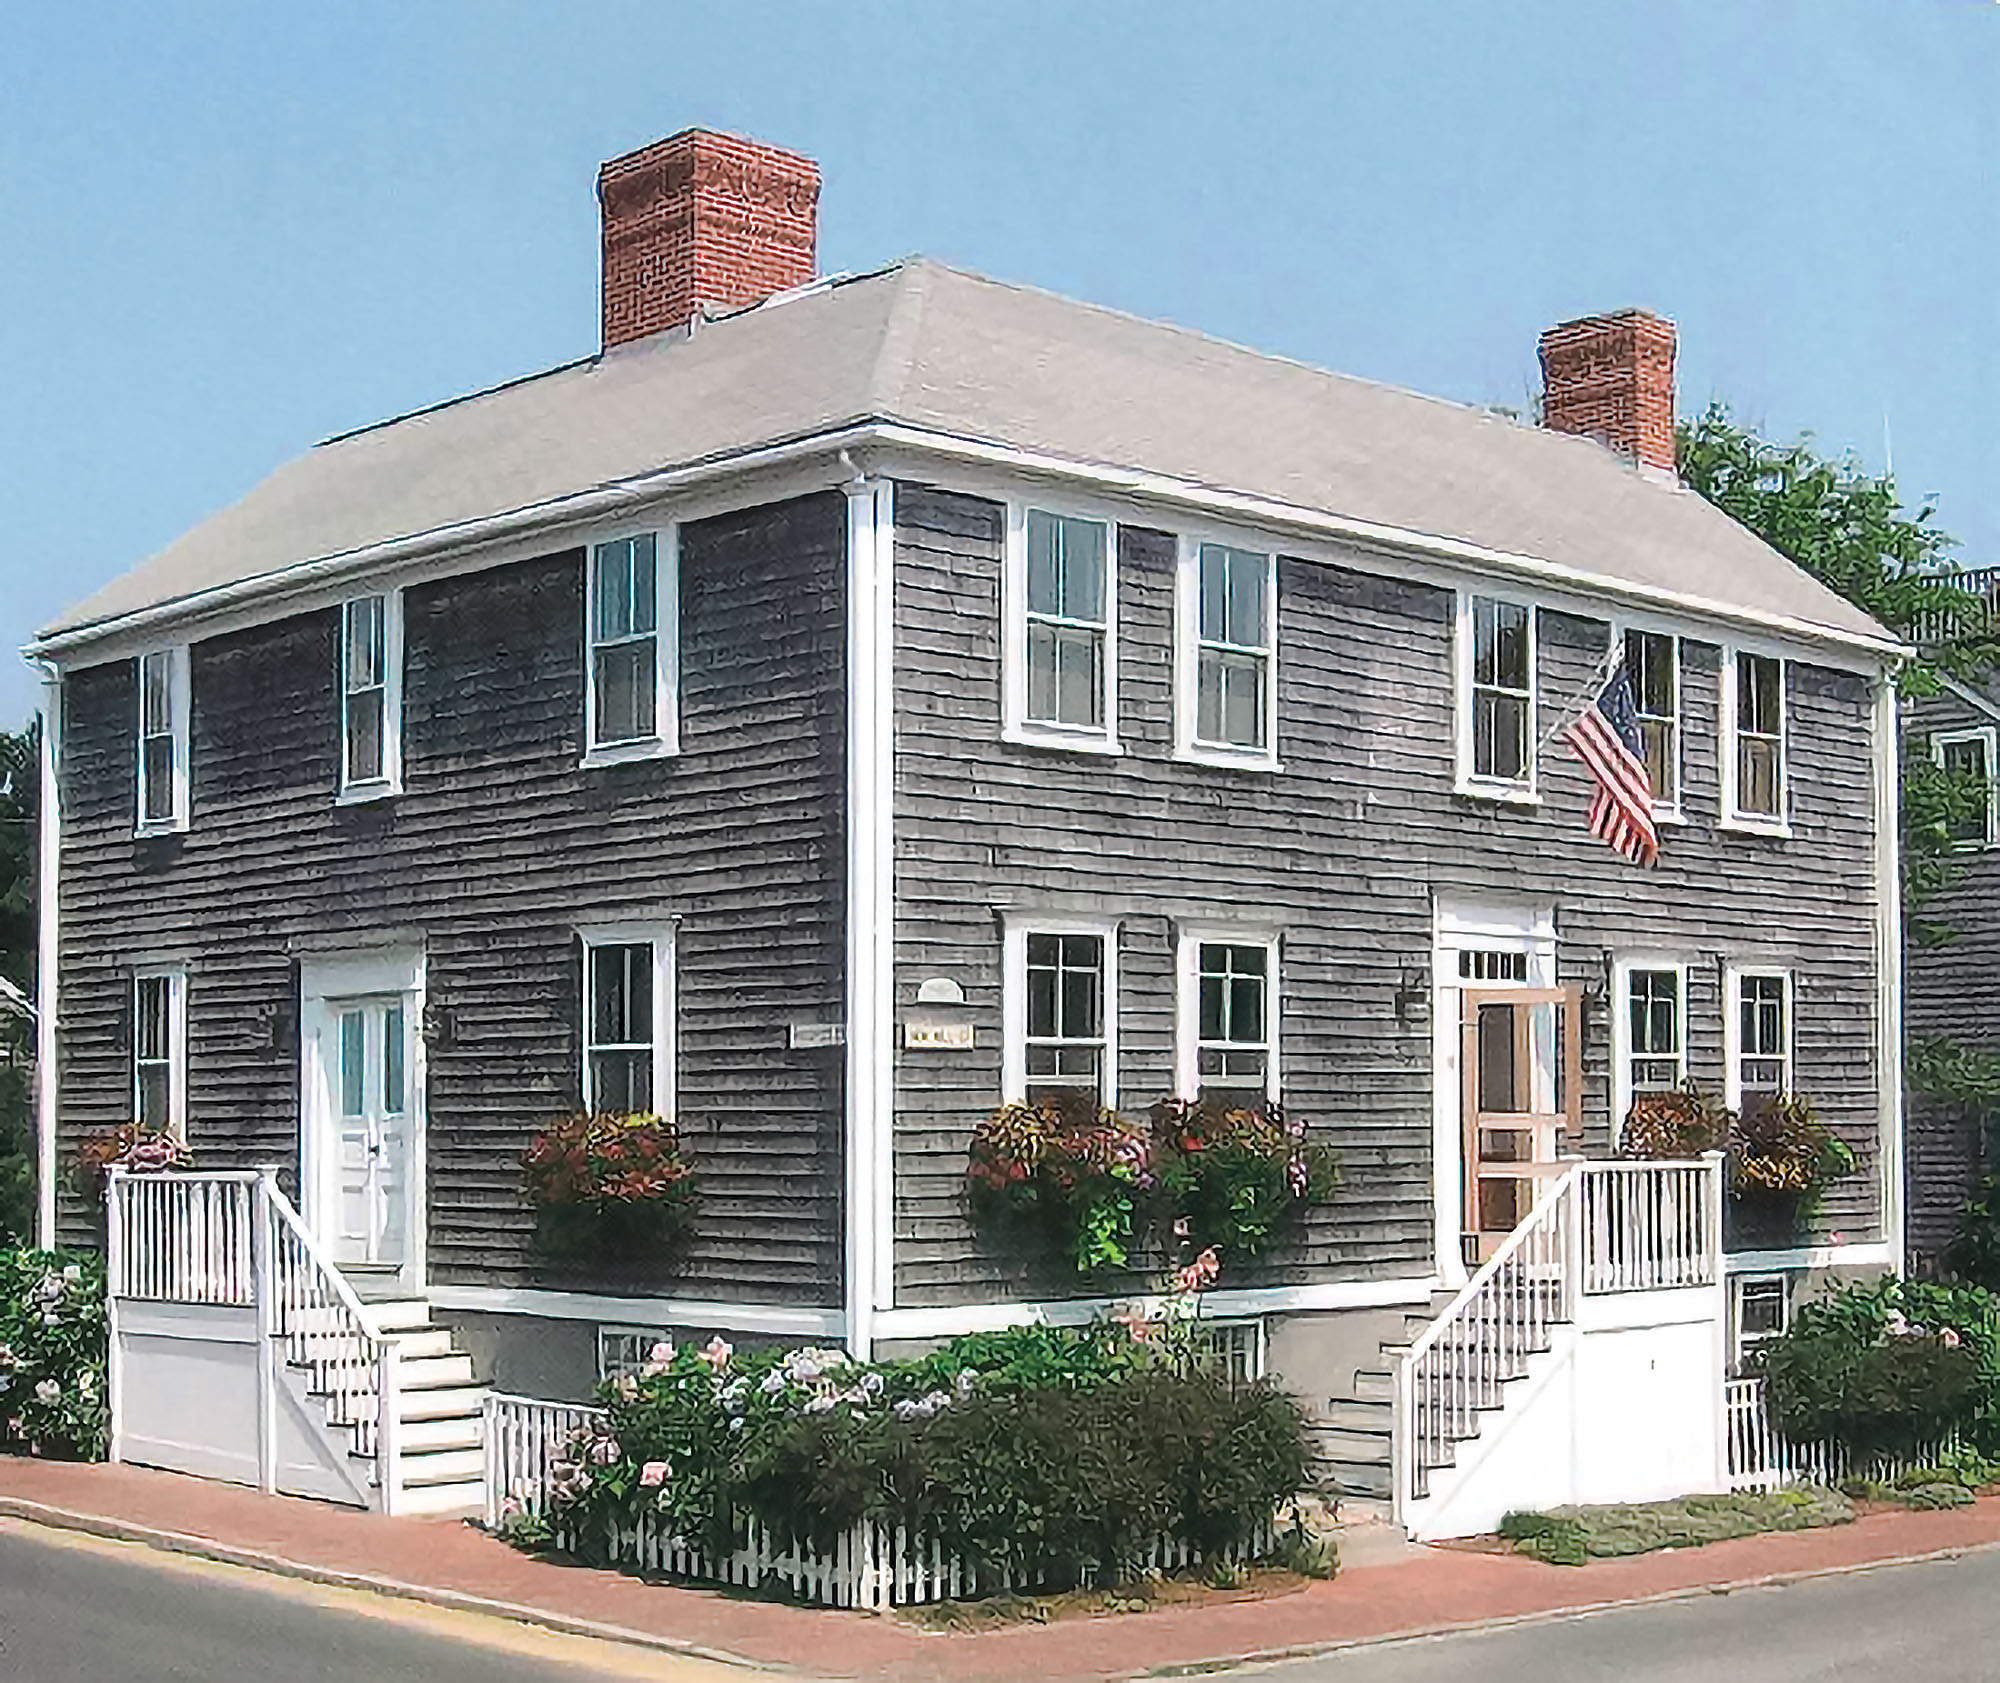 preserved 1809 Nantucket home